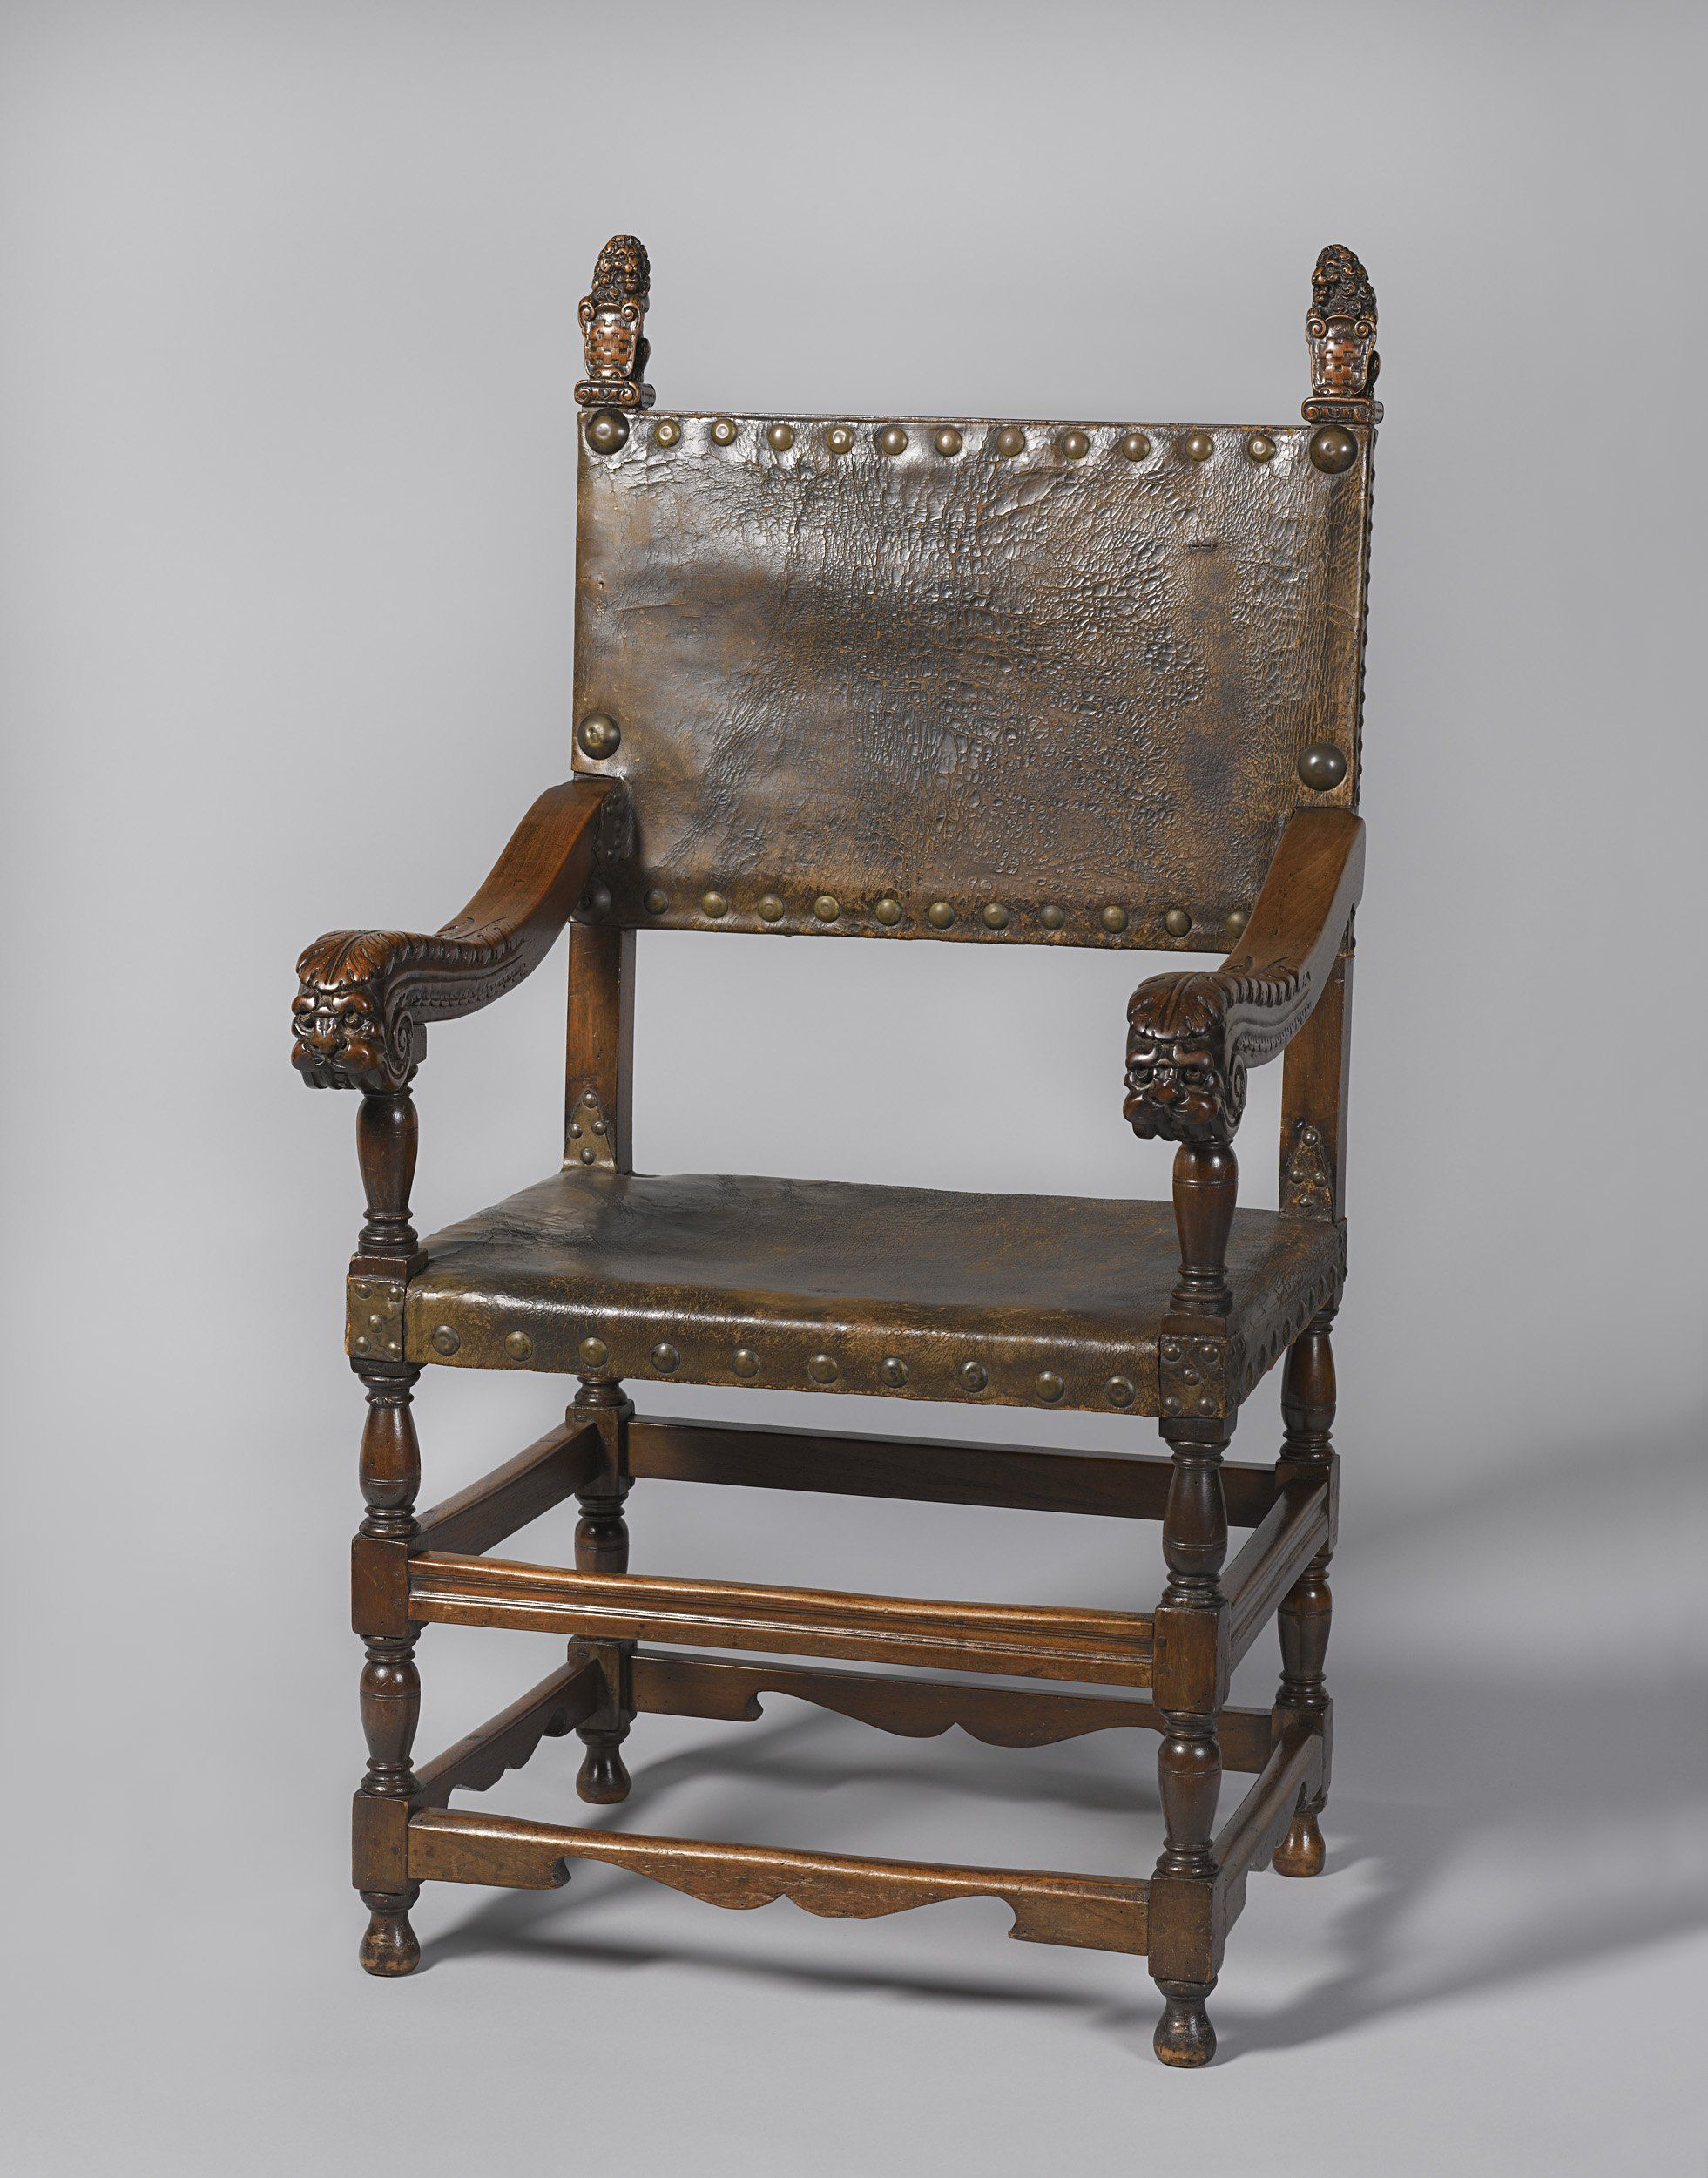 Armchair, Northern Netherlands, 1600   1625. Rijksmuseum, Public Domain